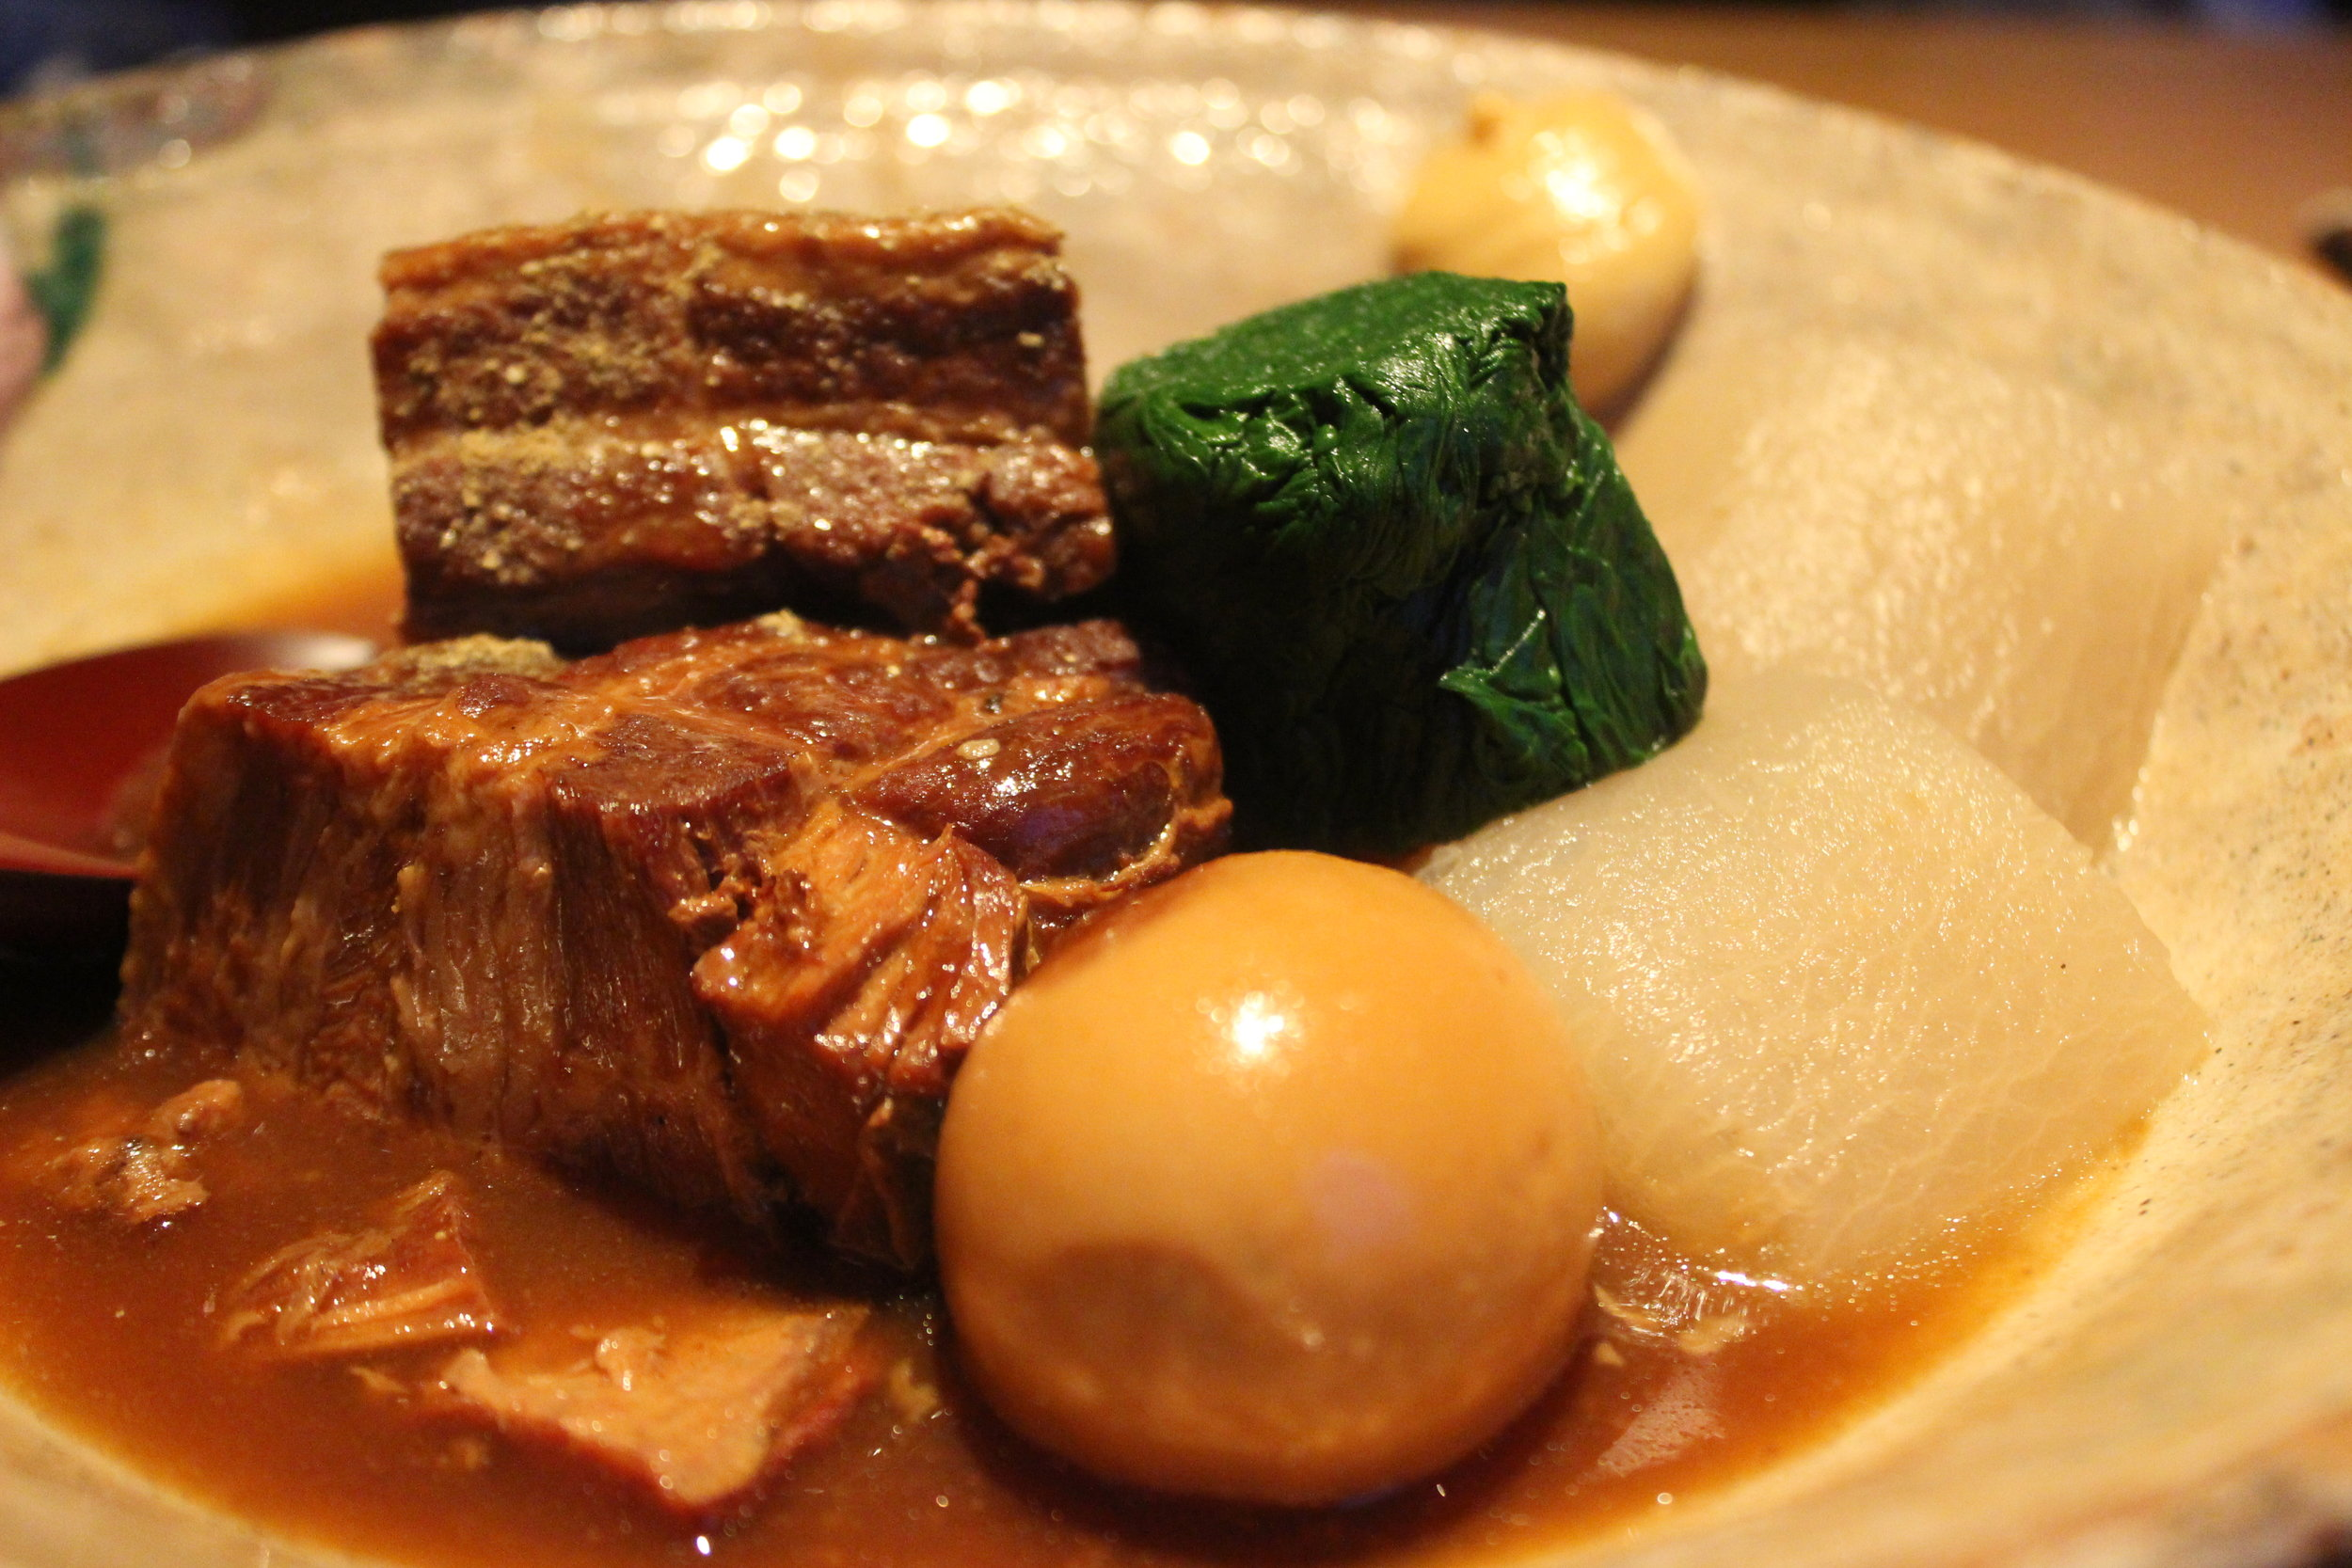 Kurobuta Kakuni: Braised Berkshire pork belly in sansho miso served with a hard boiled egg, spinach and daikon radish